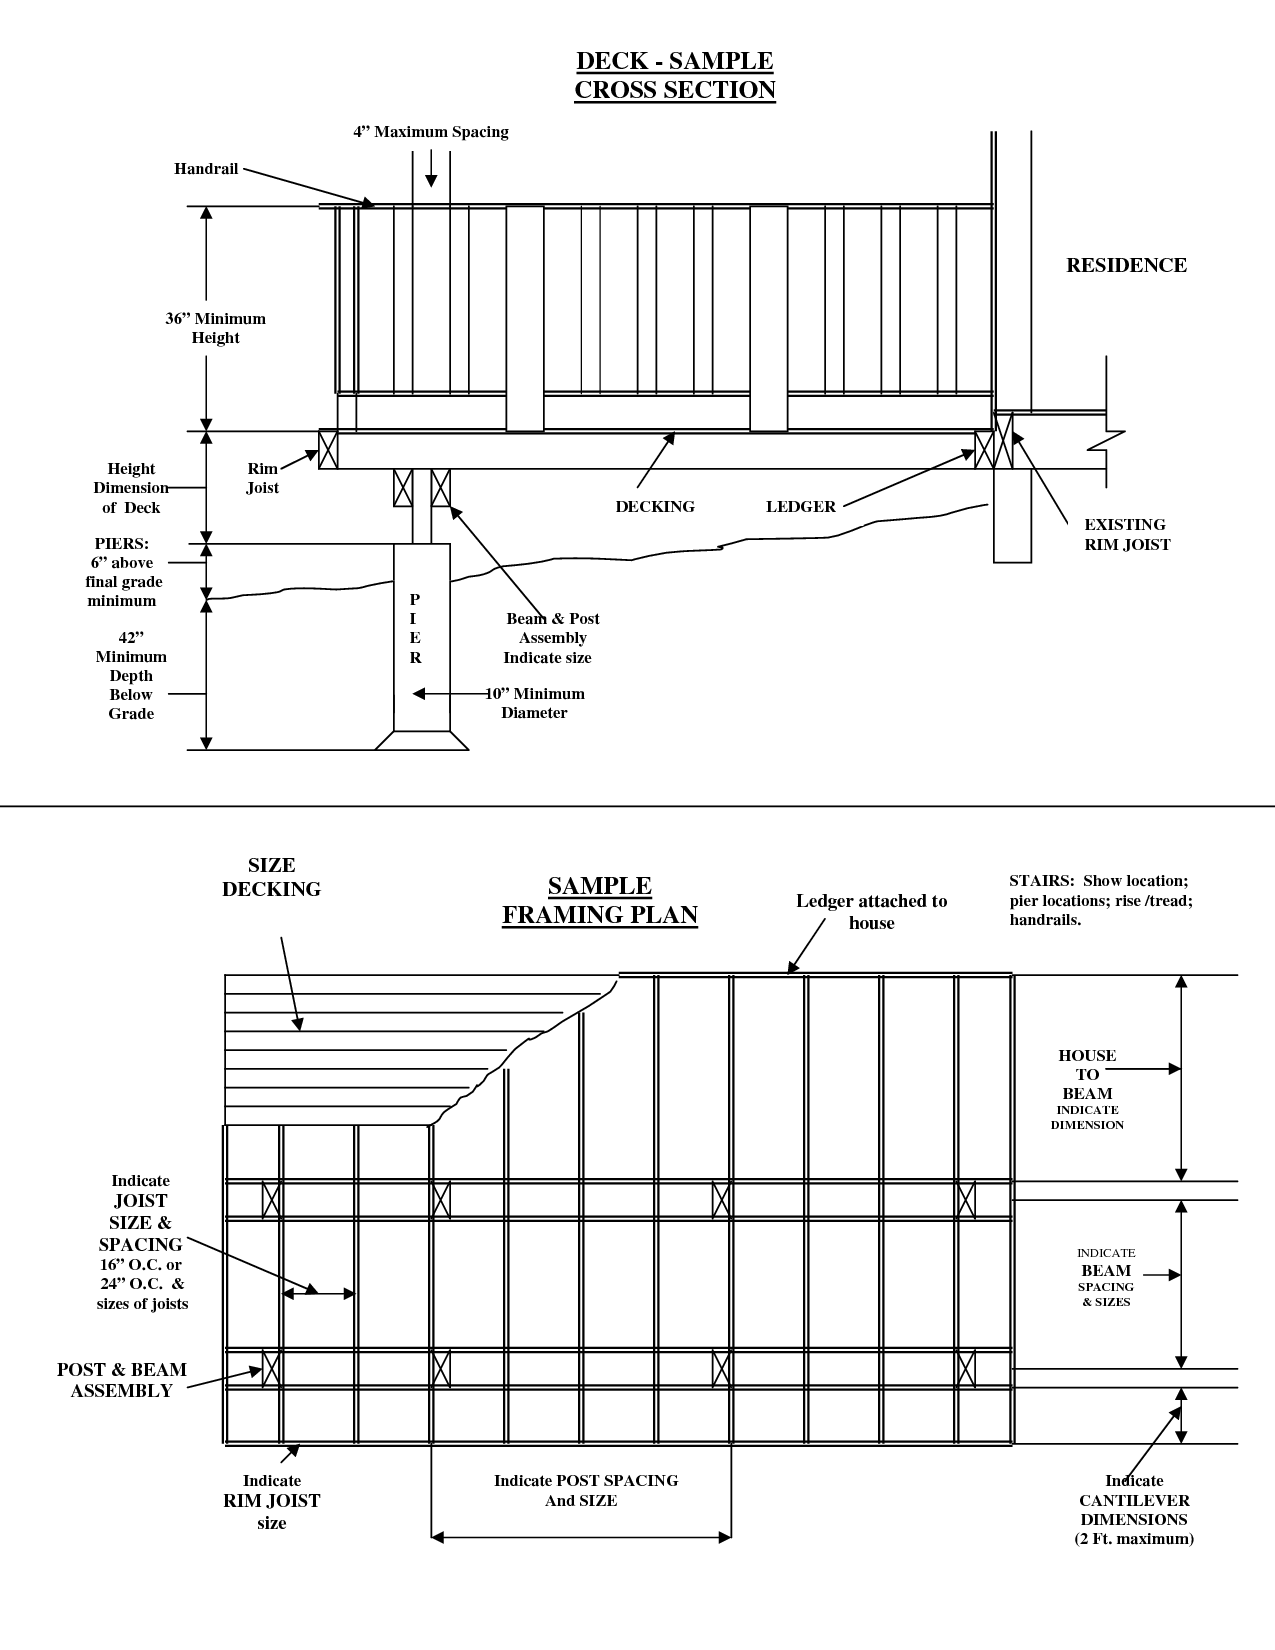 Deck handrail spacing